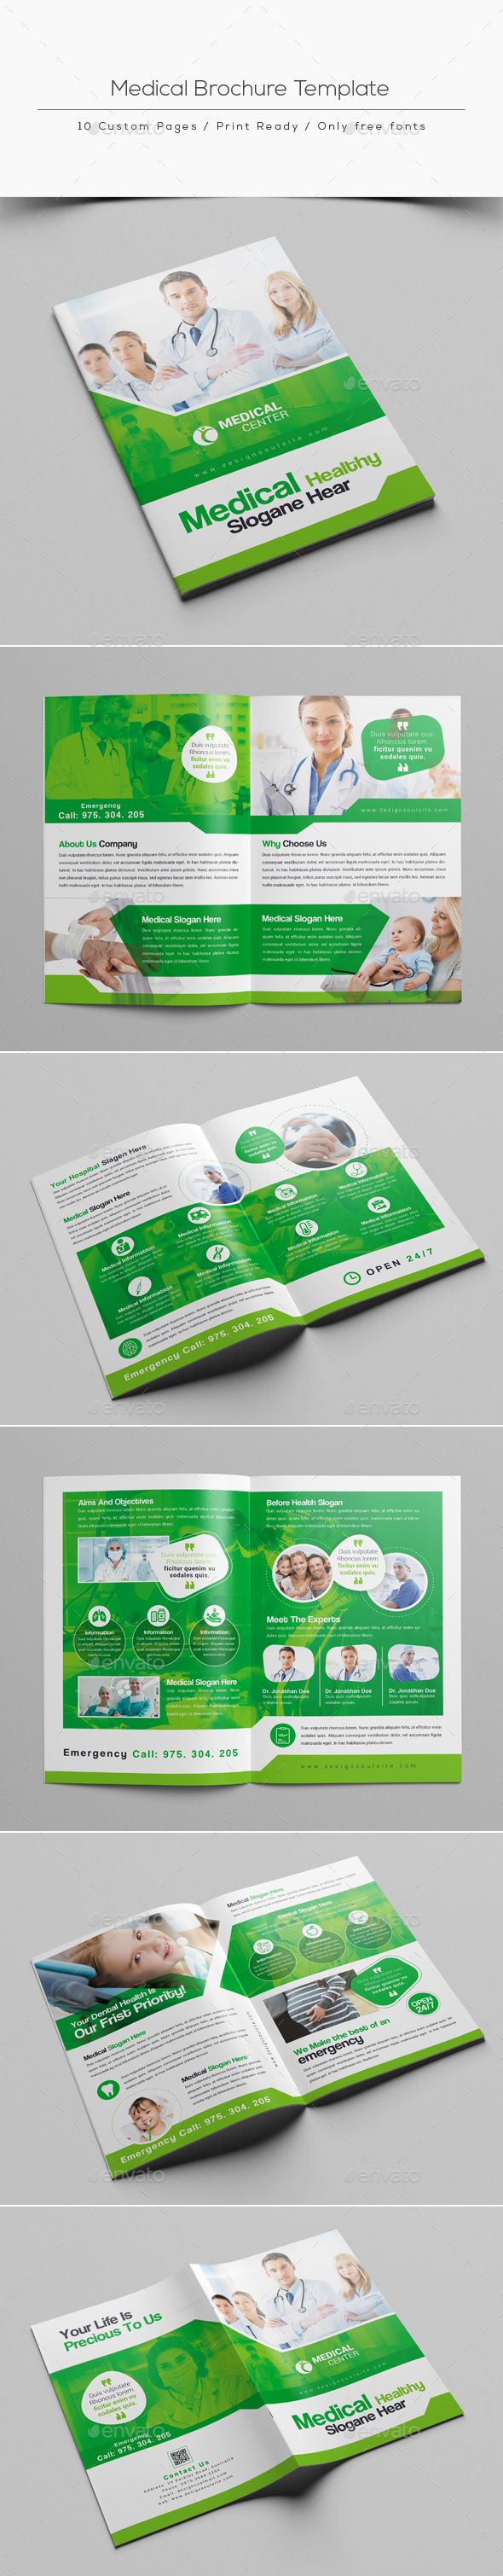 medical brochure template photoshop psd simple print available here https